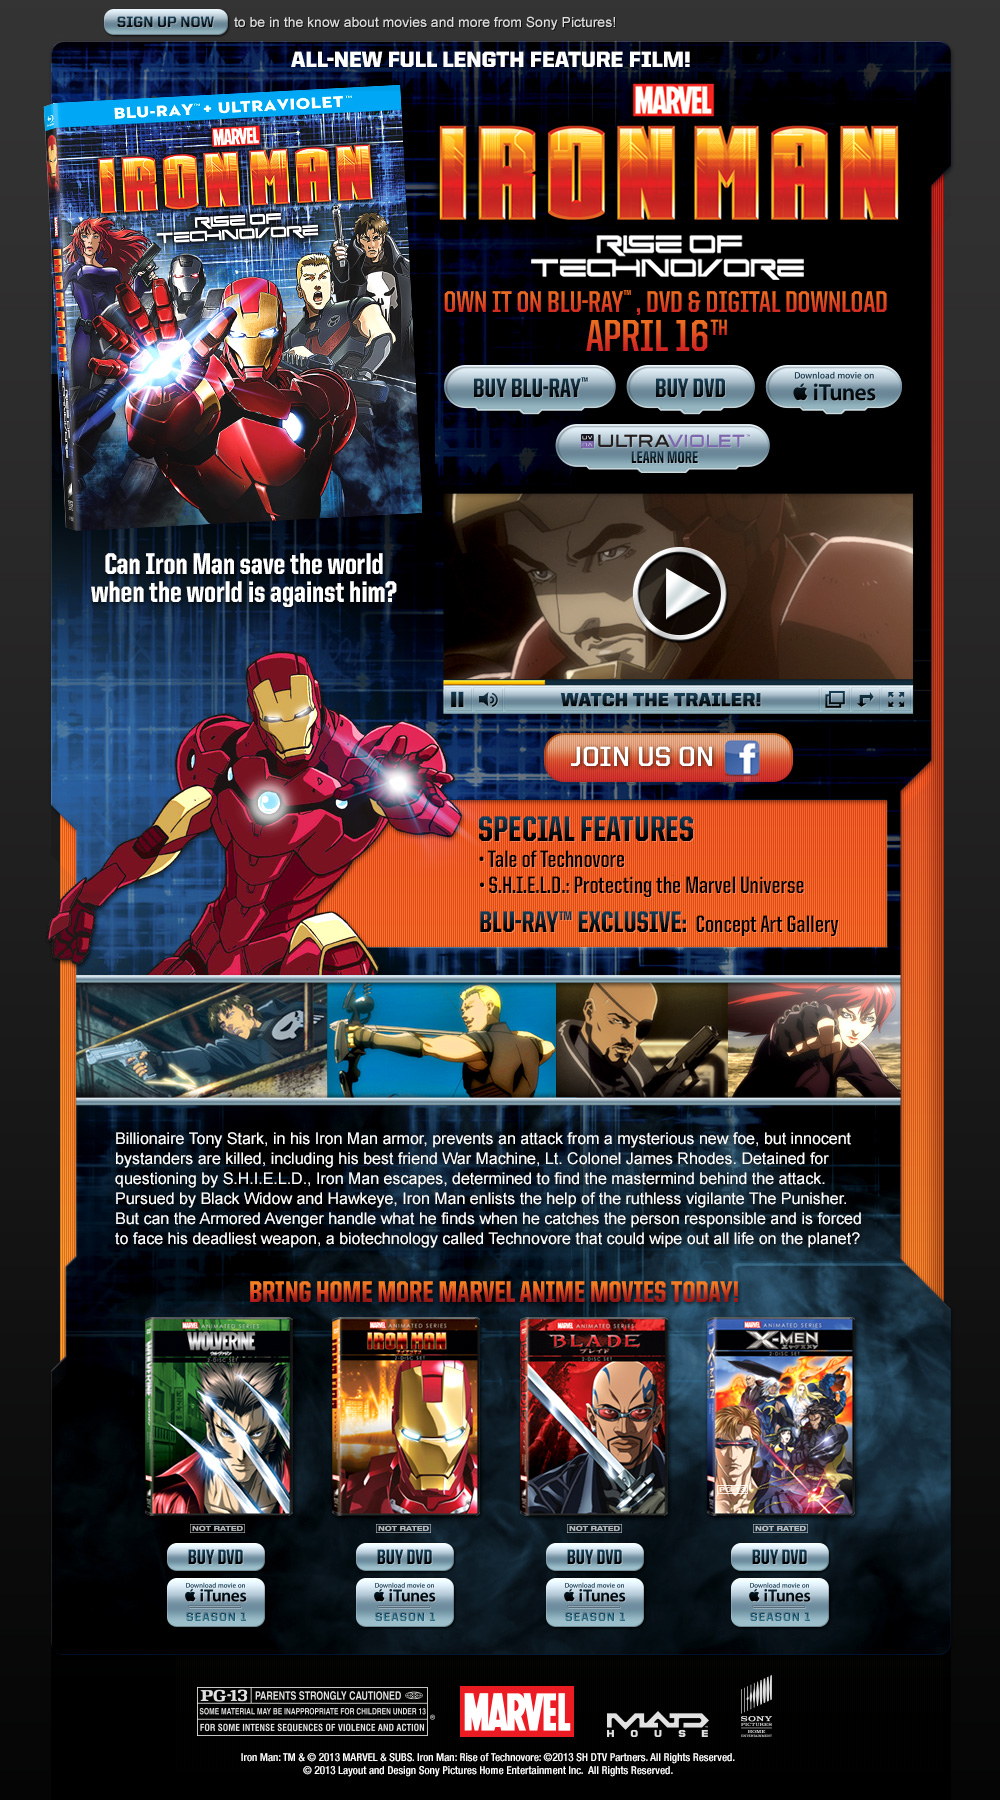 Iron Man Rise Of Technovore  Movies amp TV on Google Play